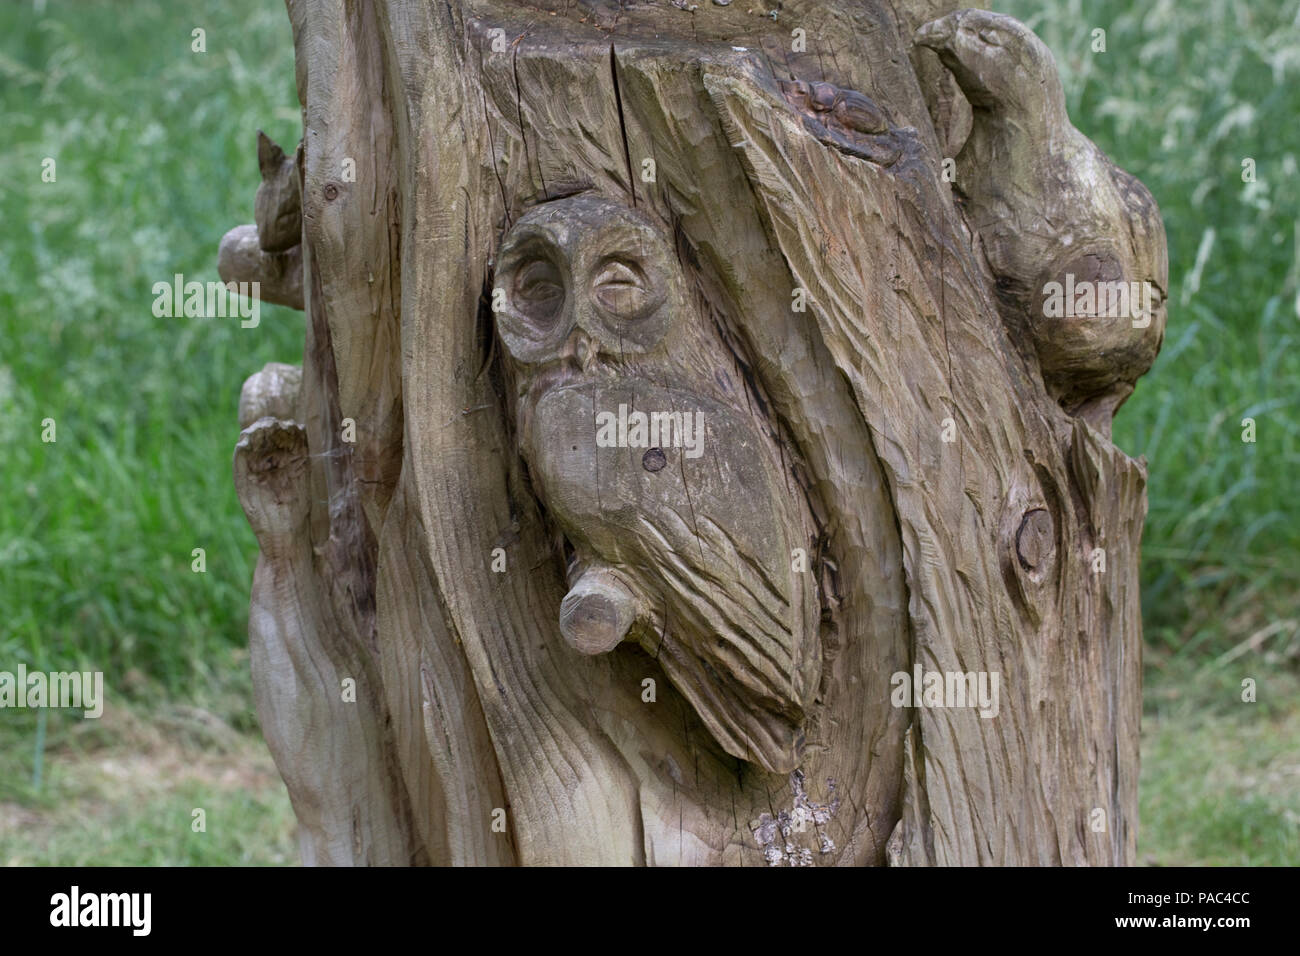 Carved tree stump with wildlife carvings Wood of Cree RSPB Nature Reserve Newton Stewart Dumfries and Galloway Scotland - Stock Image